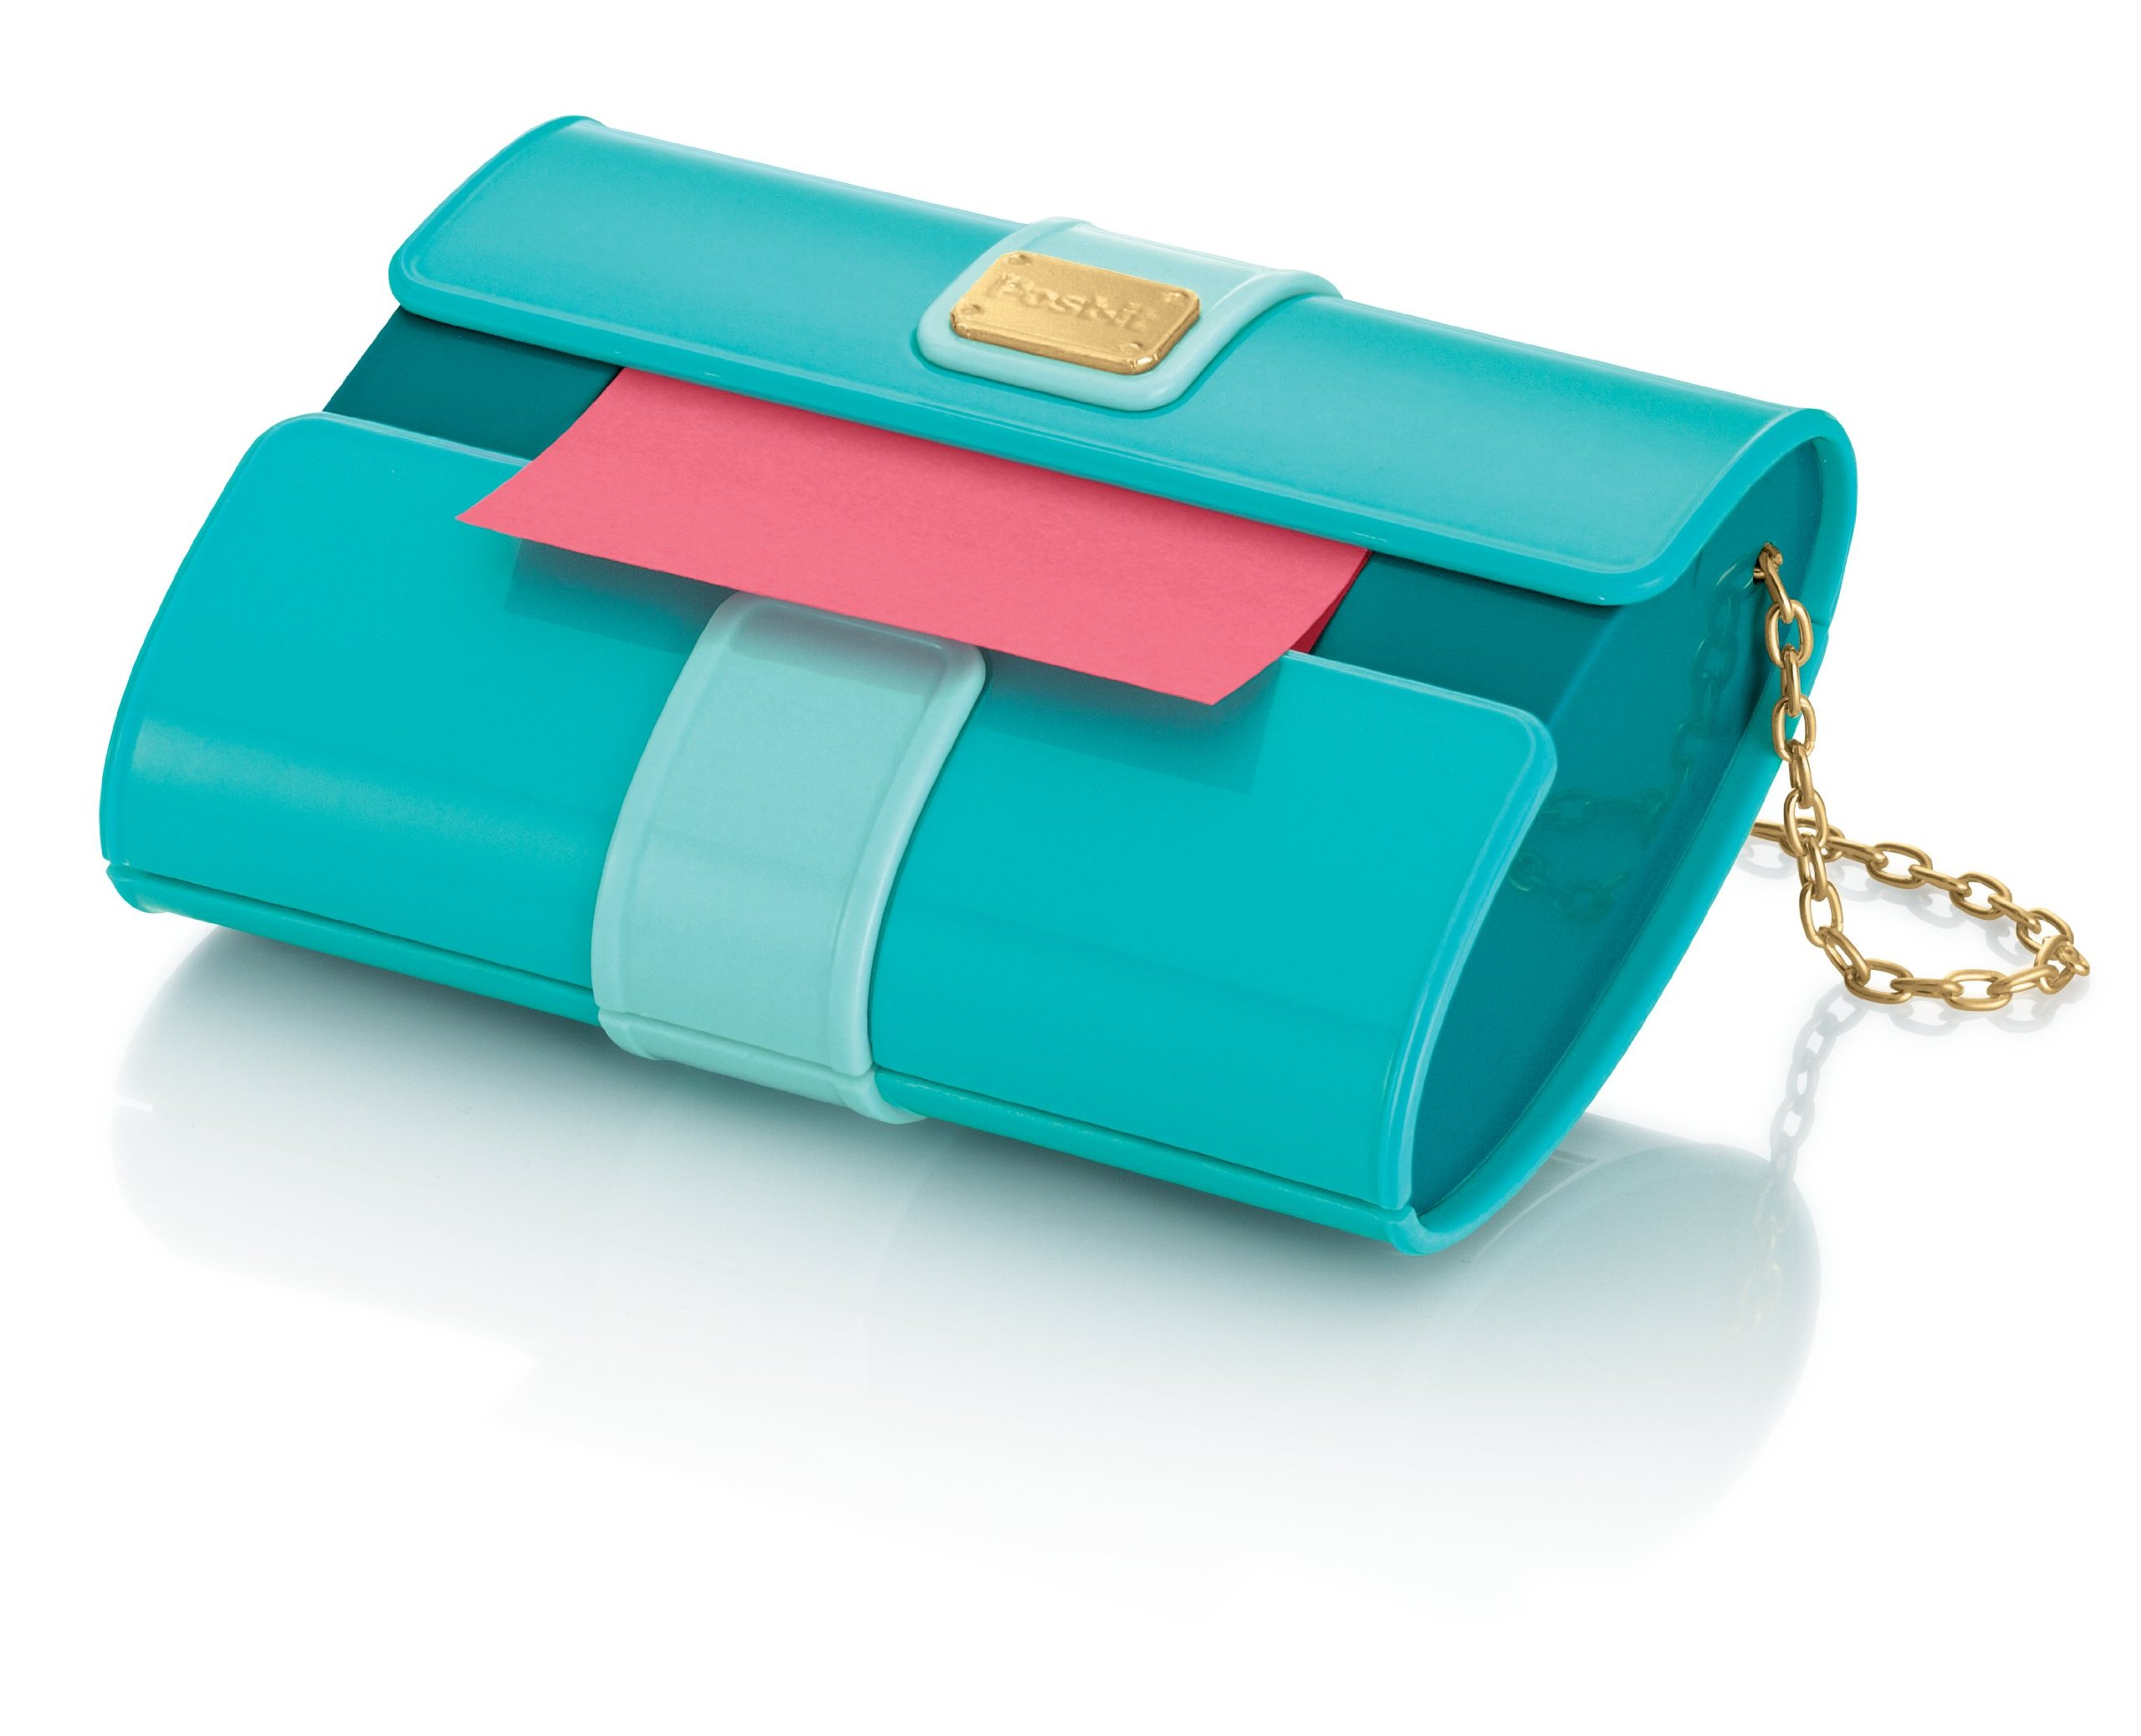 Post-it Pop-up Notes Dispenser for 3 x 3-Inch Notes, Clutch Purse style by Post-it